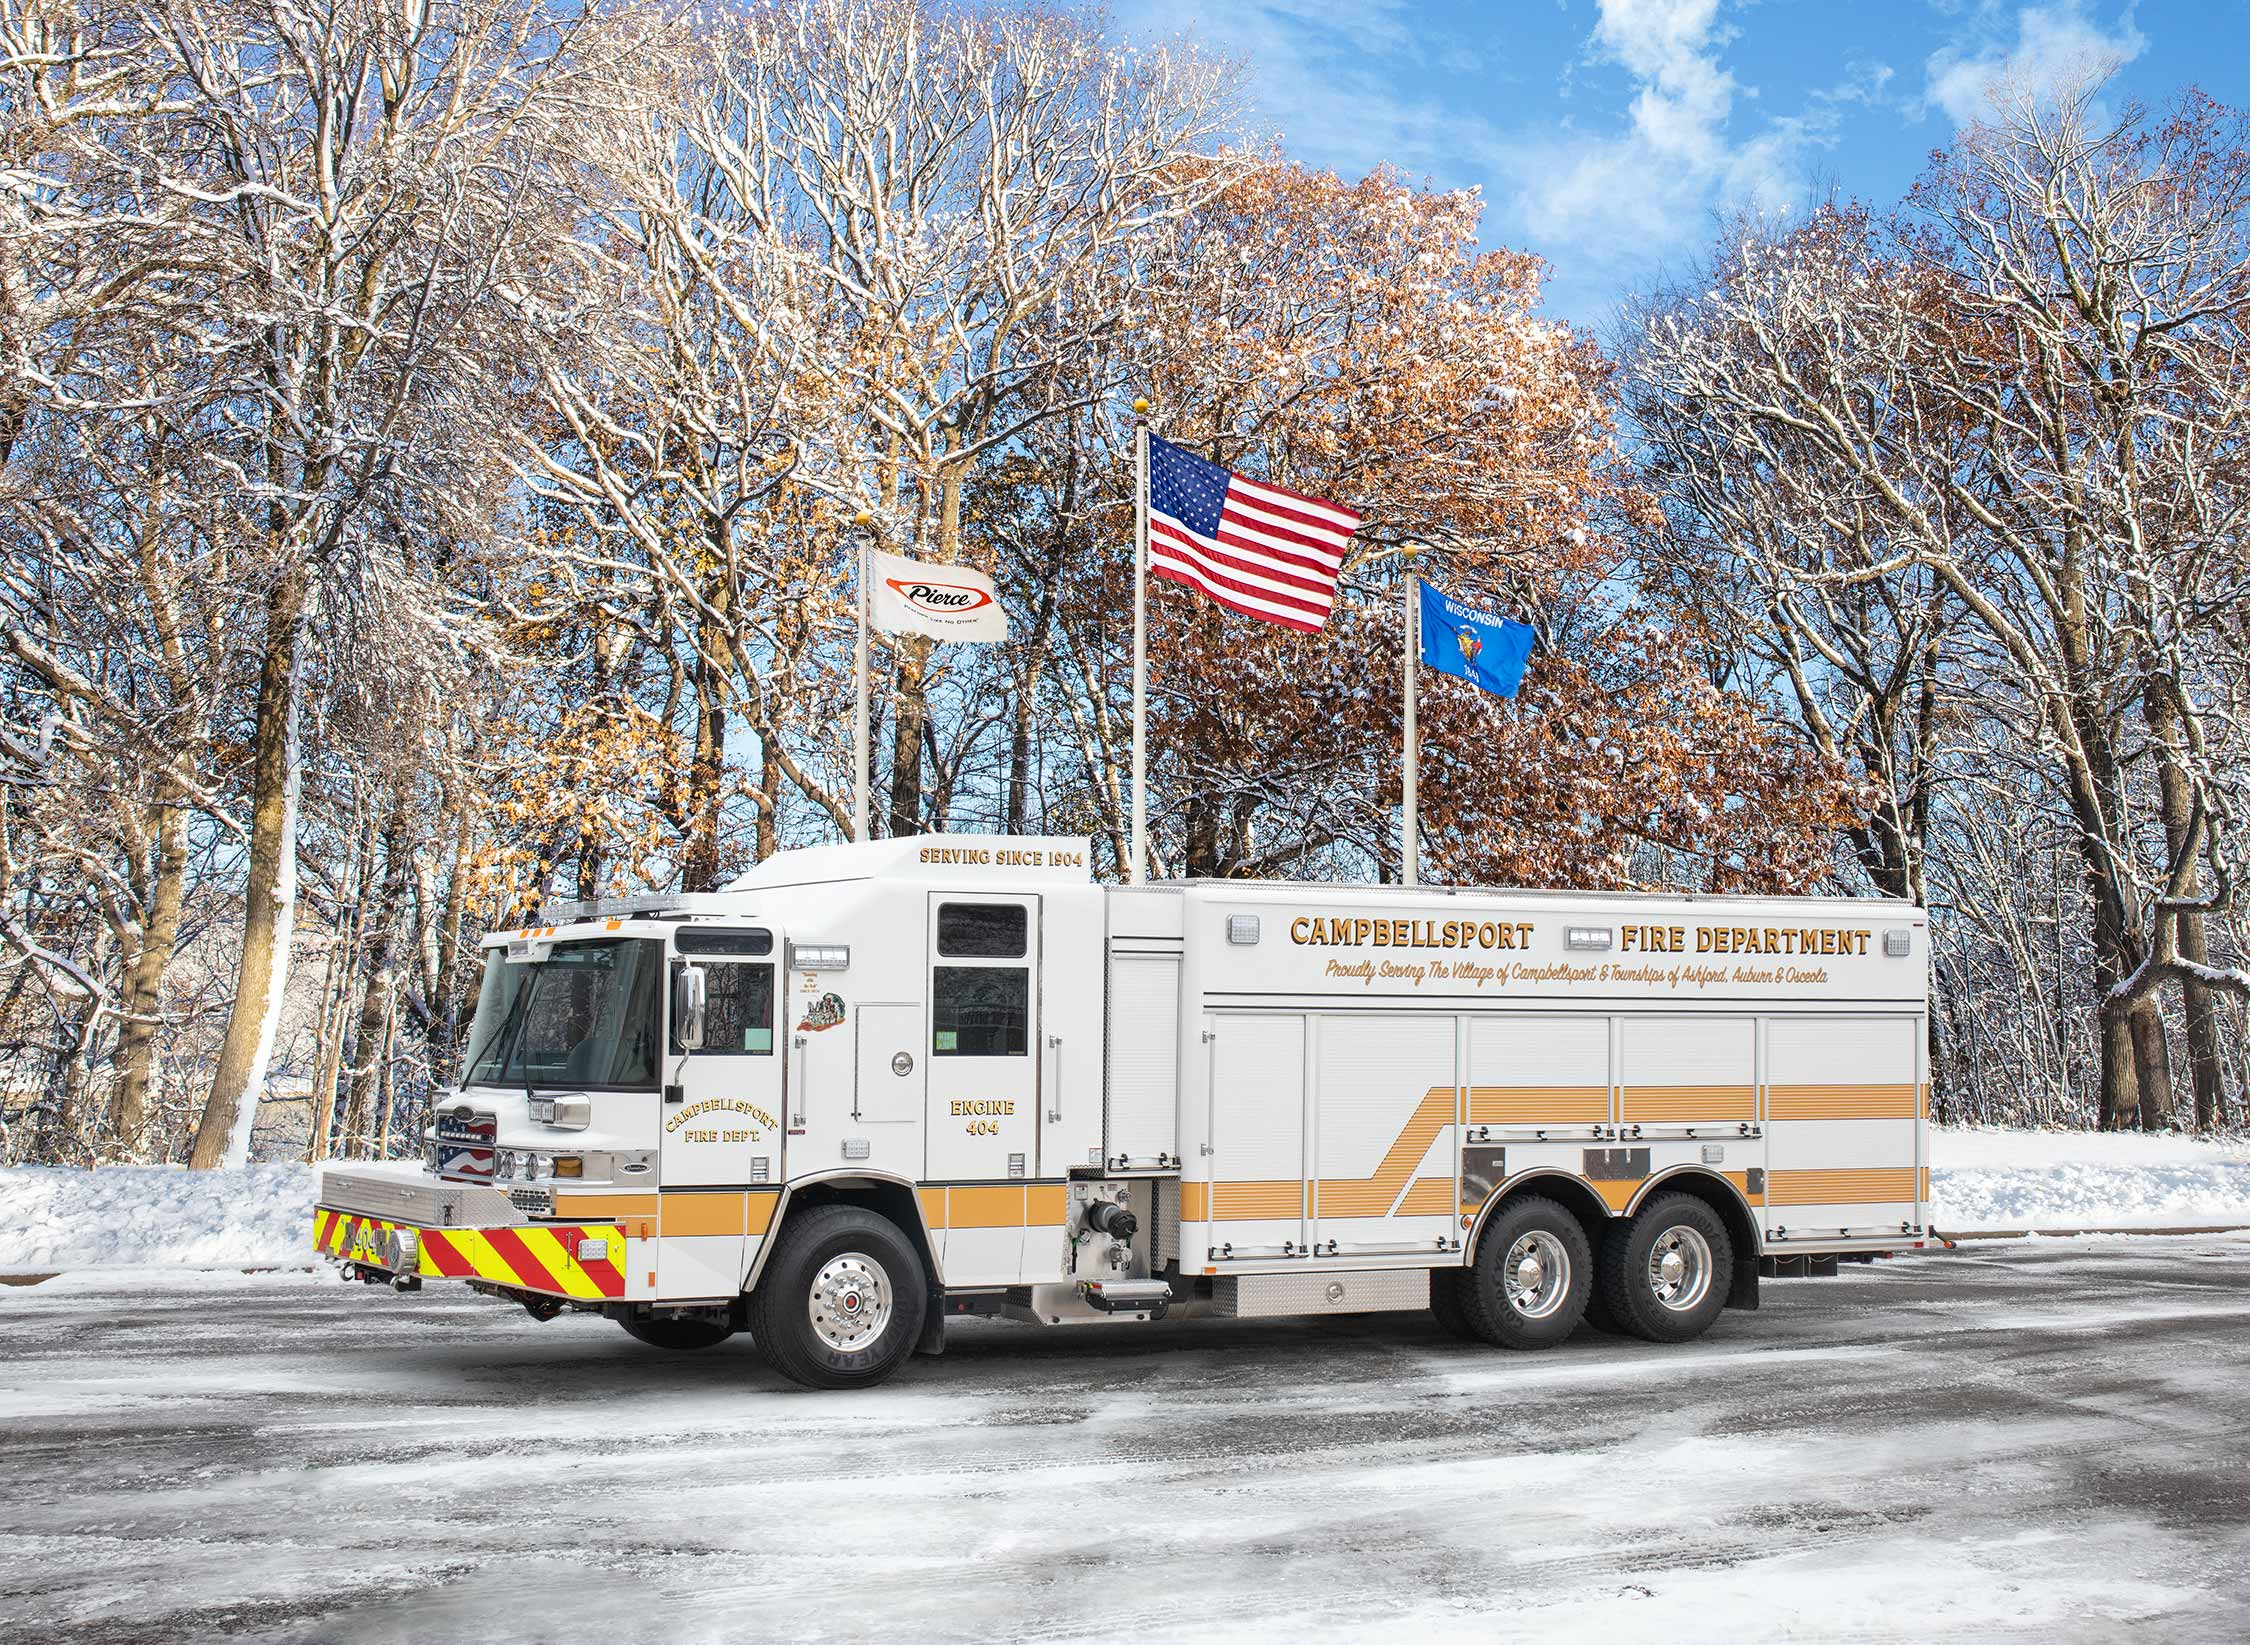 Campbellsport Fire Department - Rescue